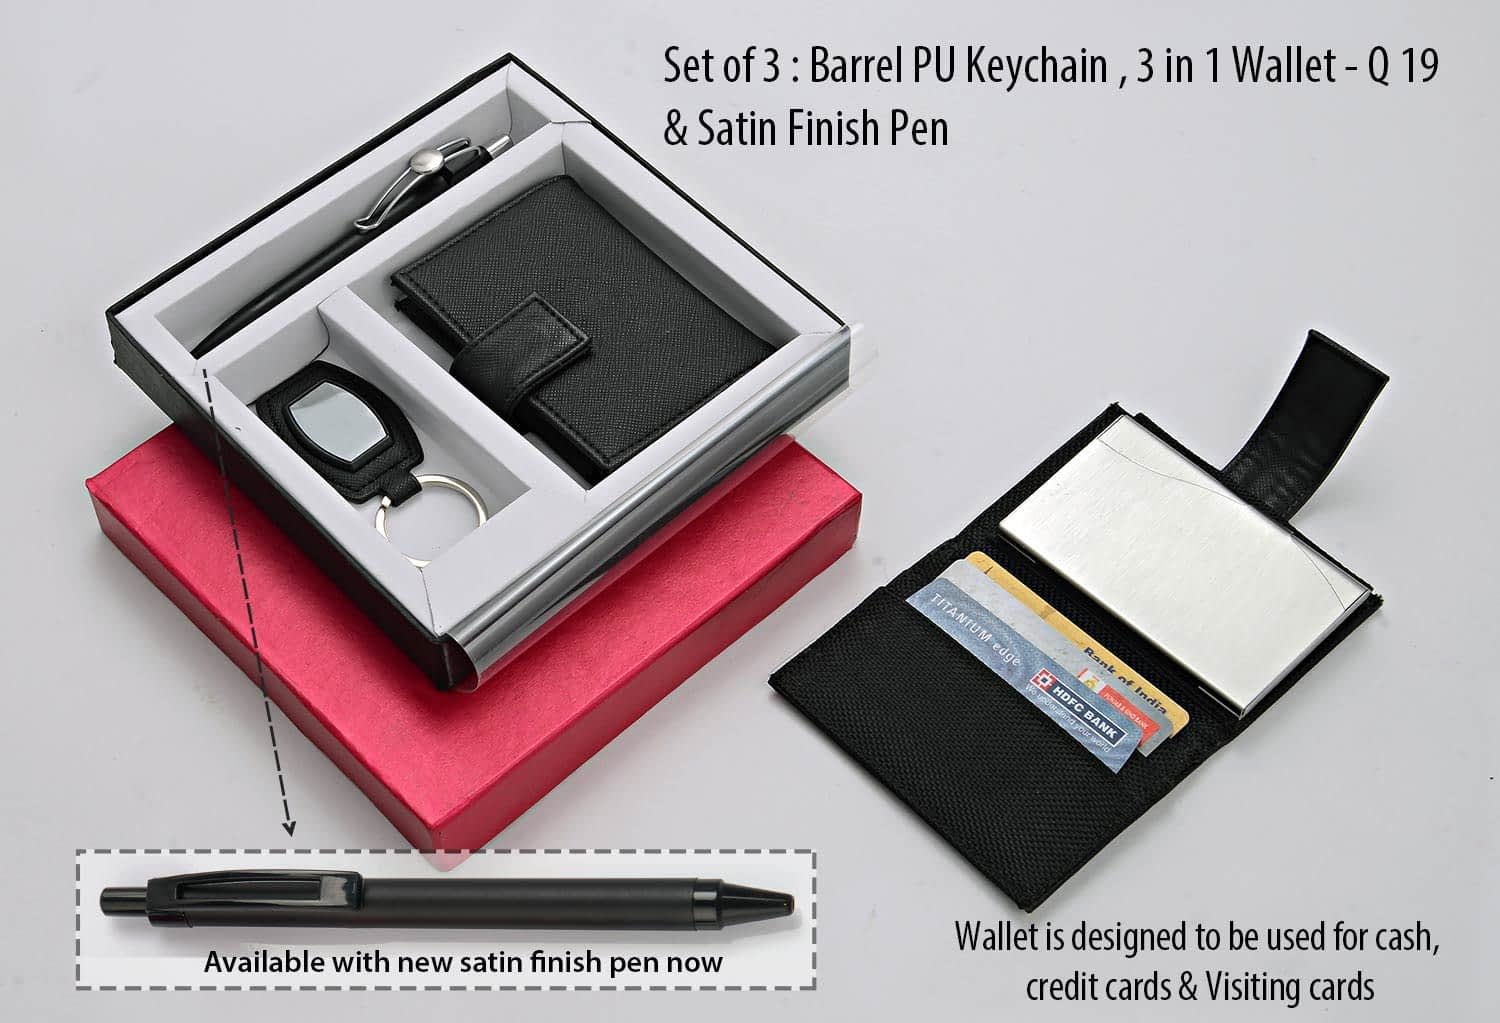 Set Of 3 - Barrel PU Keychain 3 In 1 Wallet and Highway Satin Pen